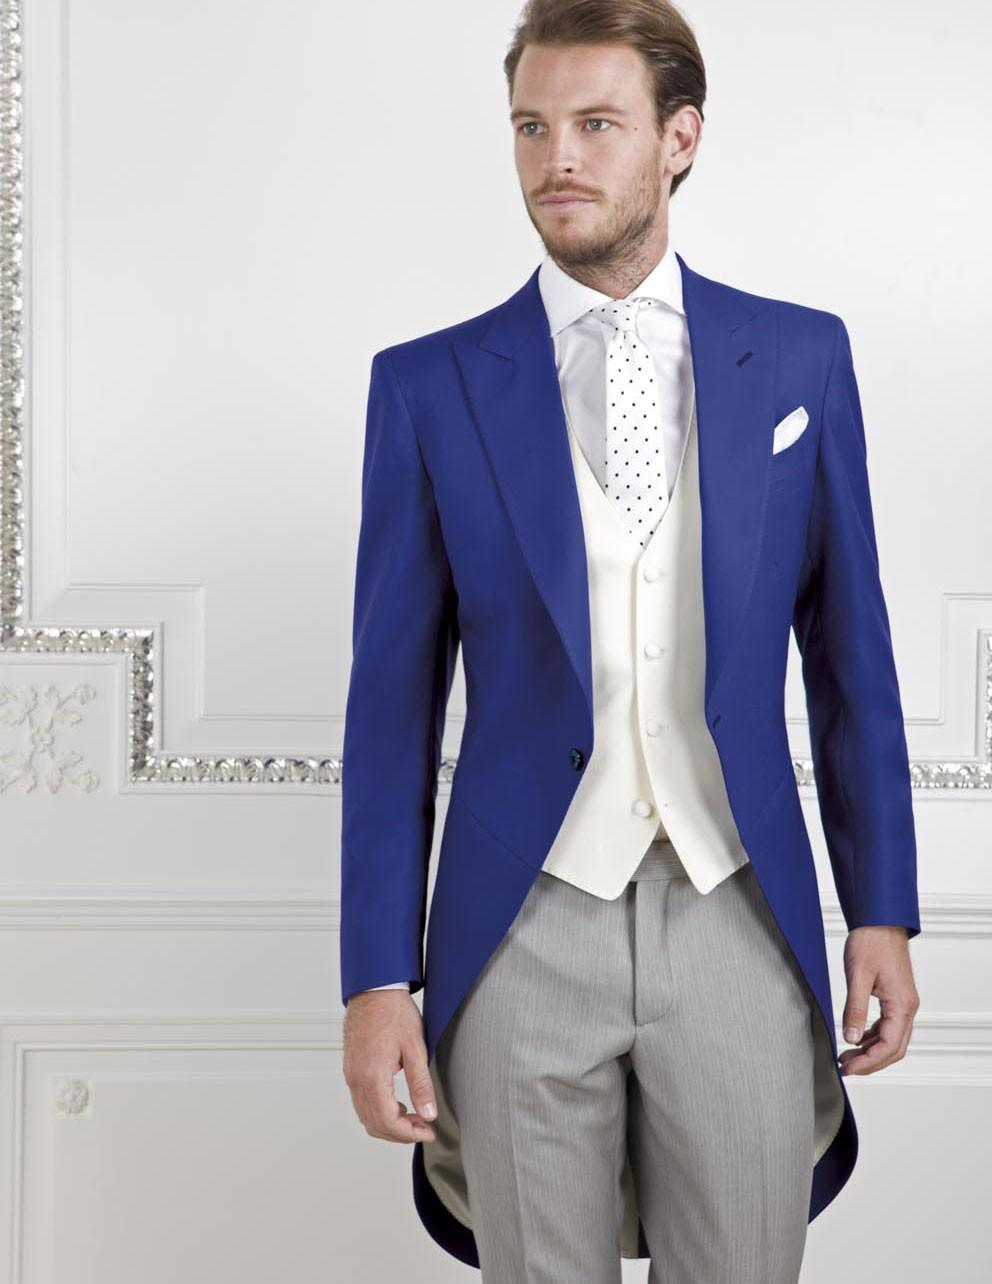 18be8e5b6 Morning Style One Button Royal Blue Groom Tuxedos Groomsmen Men's Wedding  Prom Suits Bridegroom (Jacket+Pants+Vest+Tie) K:600